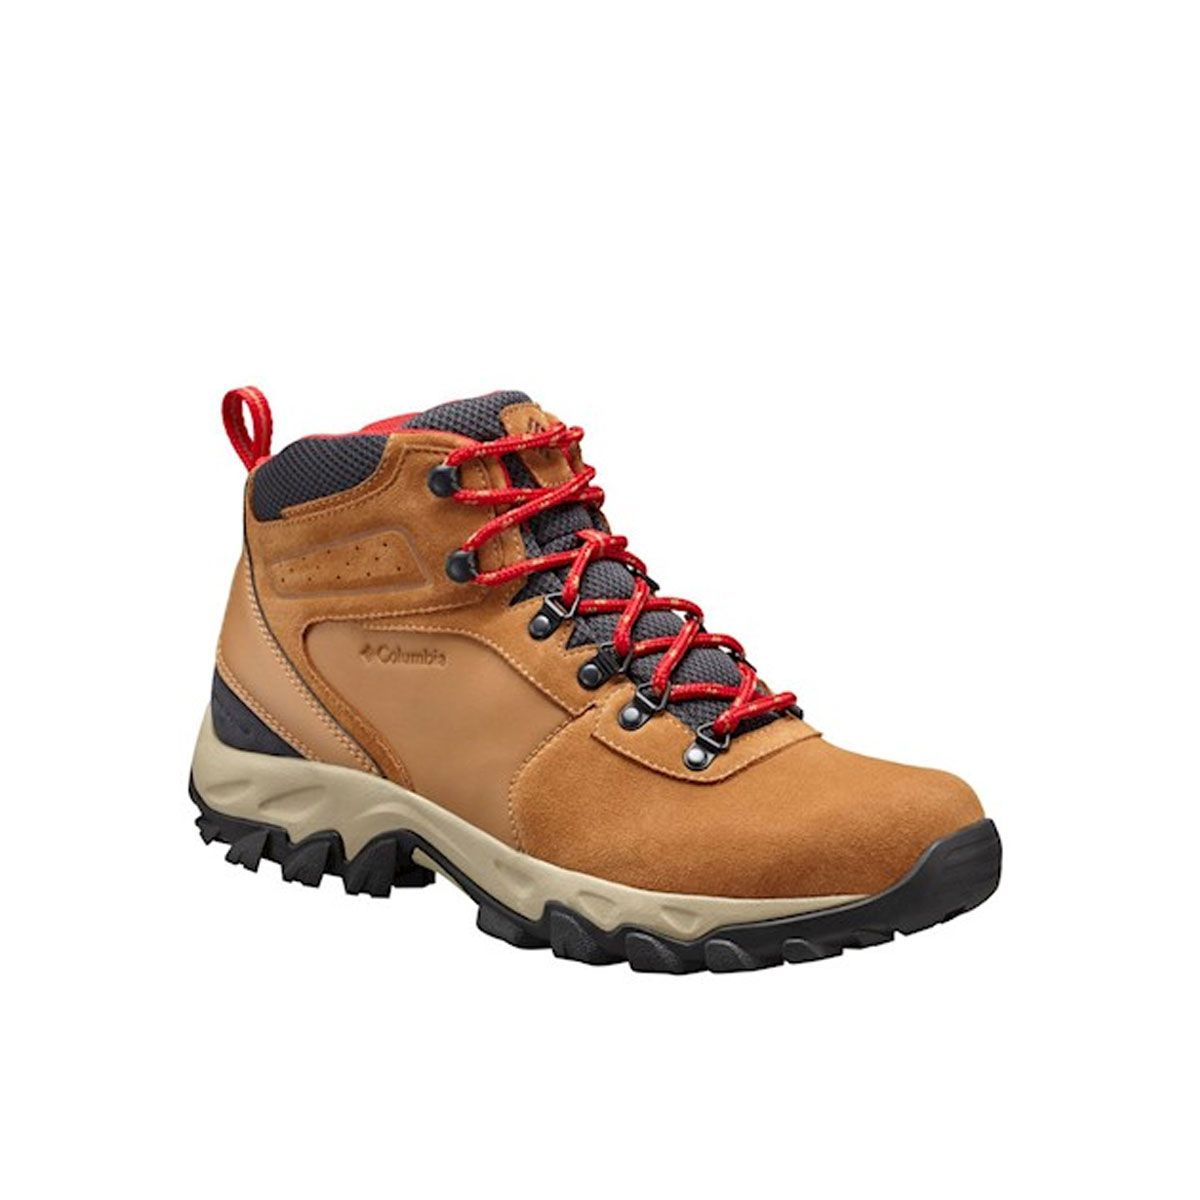 Bota Impermeável Feminina Newton Ridge Plus Amped Elk